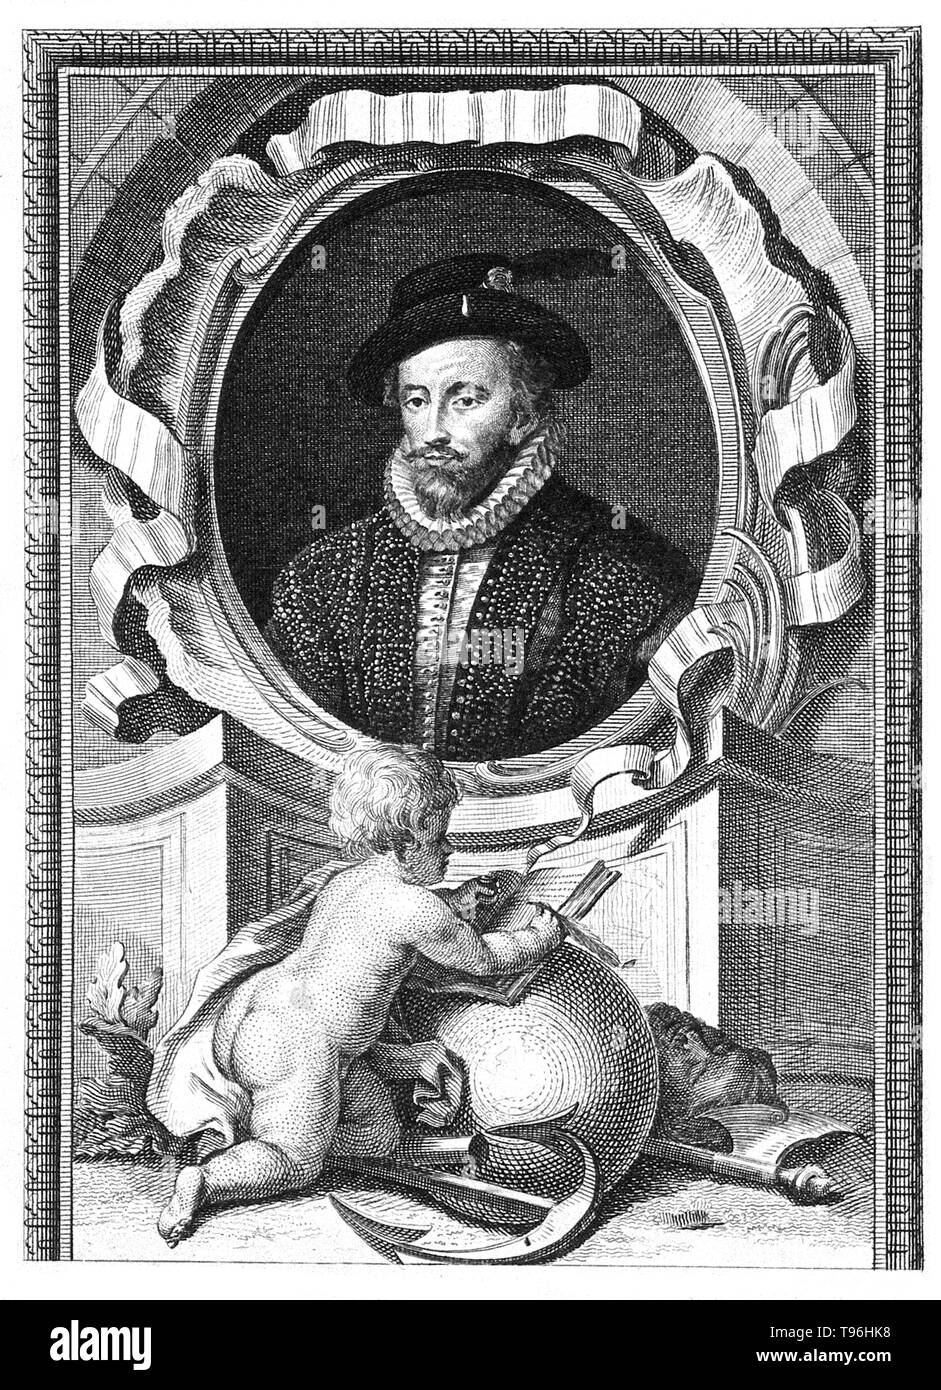 Walter Raleigh (1554 - October 29, 1618) was an English aristocrat, writer, poet, soldier, courtier, spy, and explorer. He is most remembered for popularizing tobacco in England. His plan in 1584 for colonization in North America ended in failure at Roanoke Island, but paved the way for subsequent colonies. Though a favorite of Queen Elizabeth I he secretly married Elizabeth Throckmorton, one of the Queen's ladies-in-waiting in 1591 without the Queen's permission and he and his wife were sent to the Tower of London. In 1594 Raleigh heard of a ''City of Gold'' in South America and sailed to fin - Stock Image